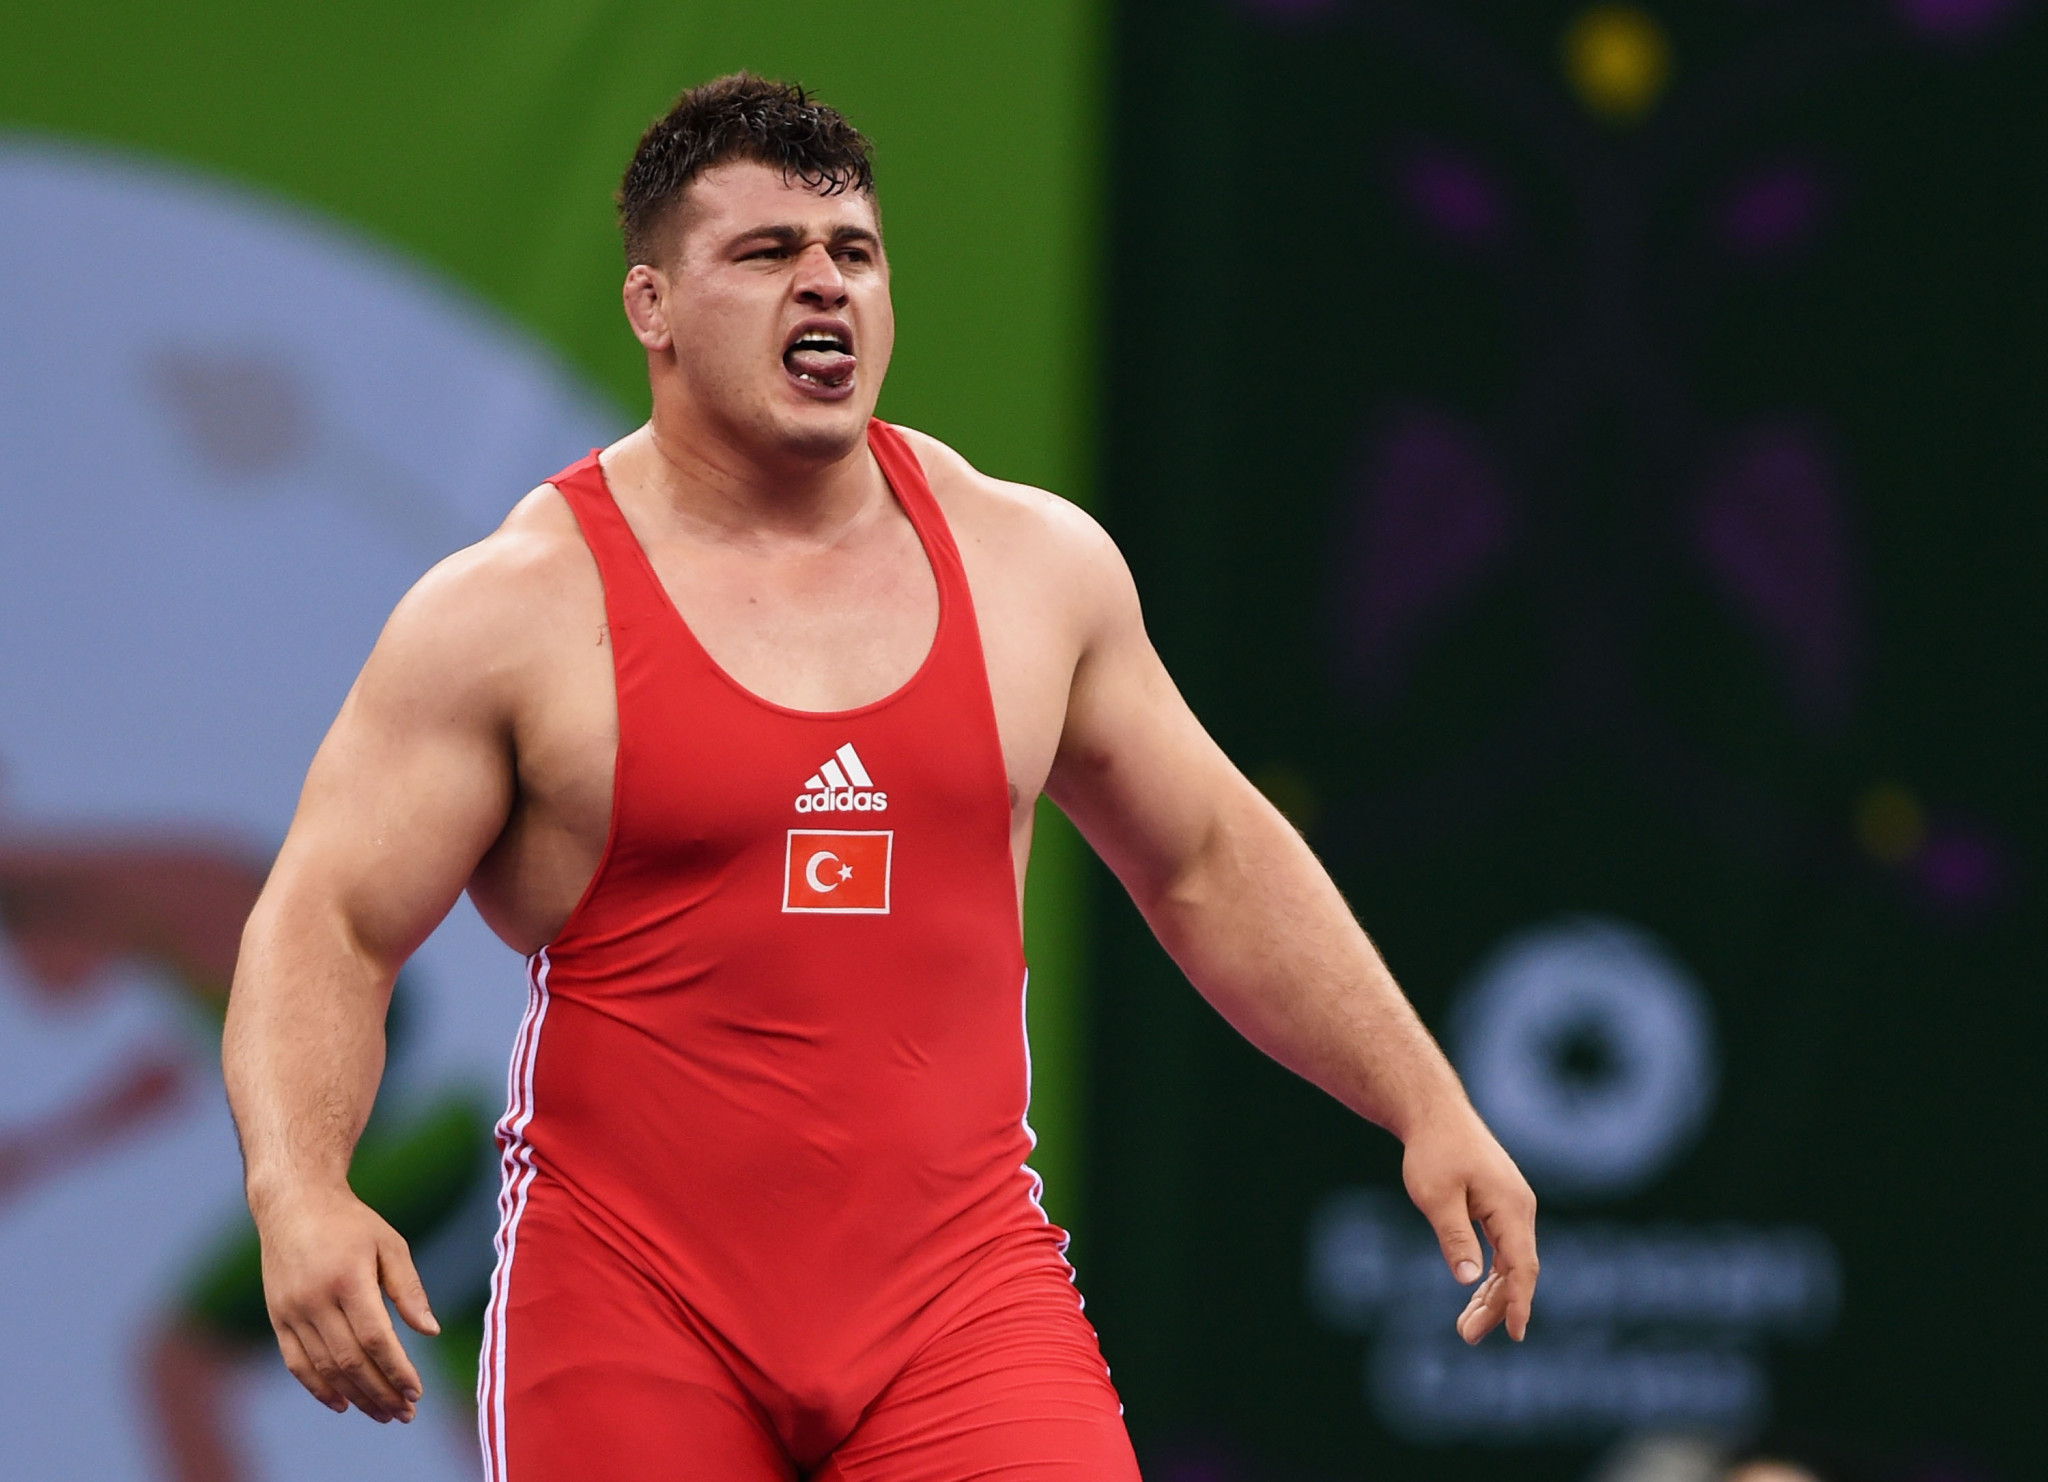 Russia claim two golds in men's Greco-Roman finals at European Wrestling Championships